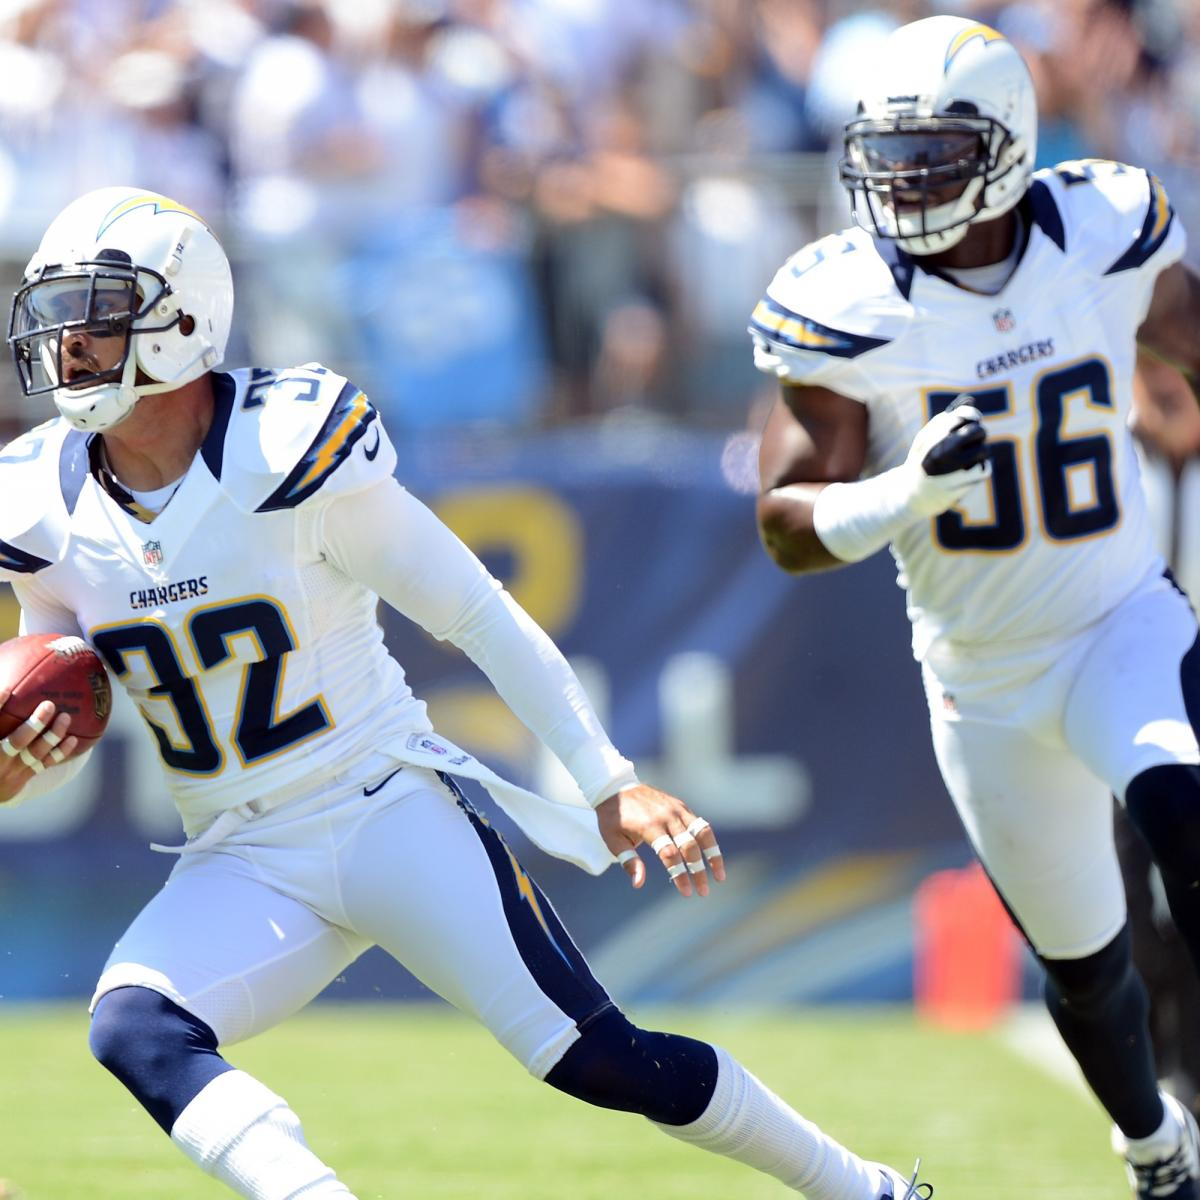 San Diego Chargers Bleacher Report: Predicting Awards Honors For The San Diego Chargers' 2013